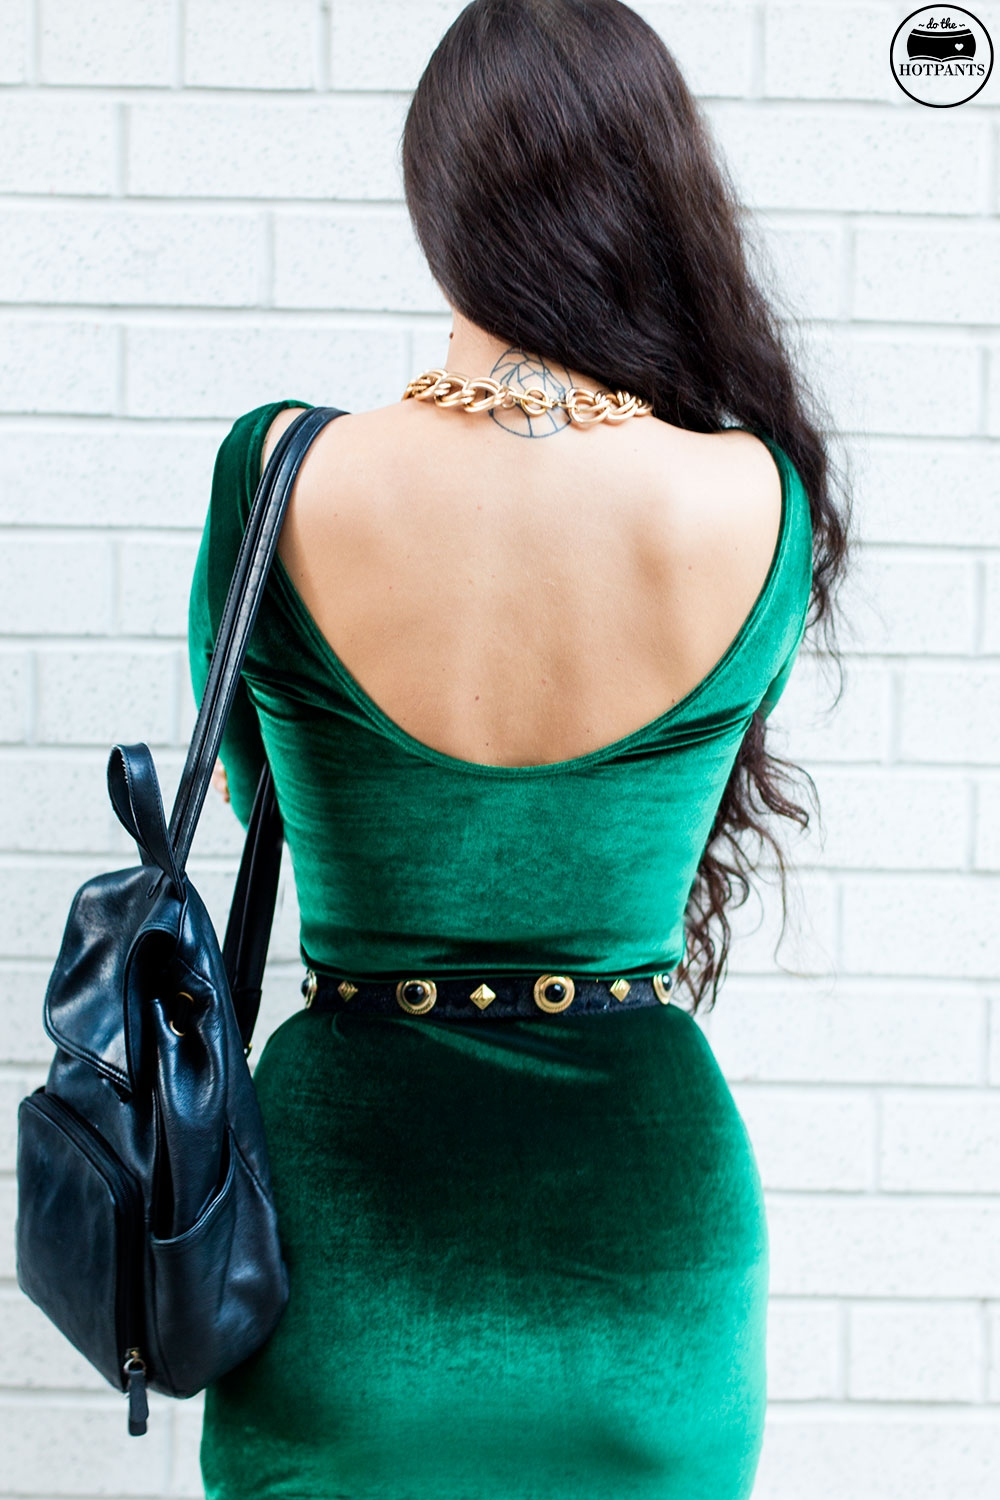 Do The Hotpants Dana Suchow Green Velvet Bodycon Dress Minidress Curvy Woman Long Hairstyle Wavy Hair IMG_3612